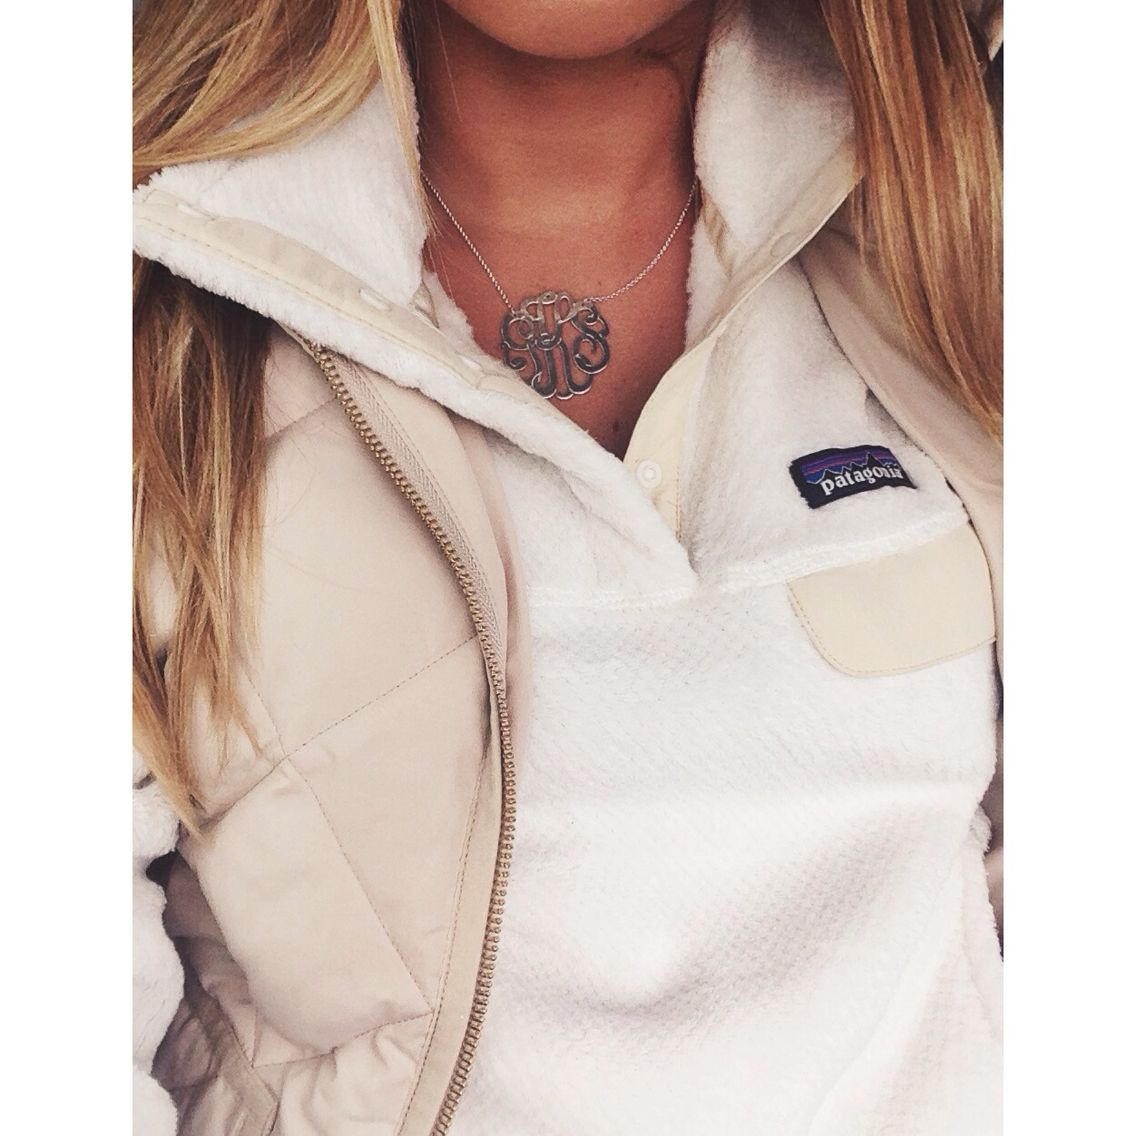 Patagonia Jacket And Monogram Necklace Fashion Preppy